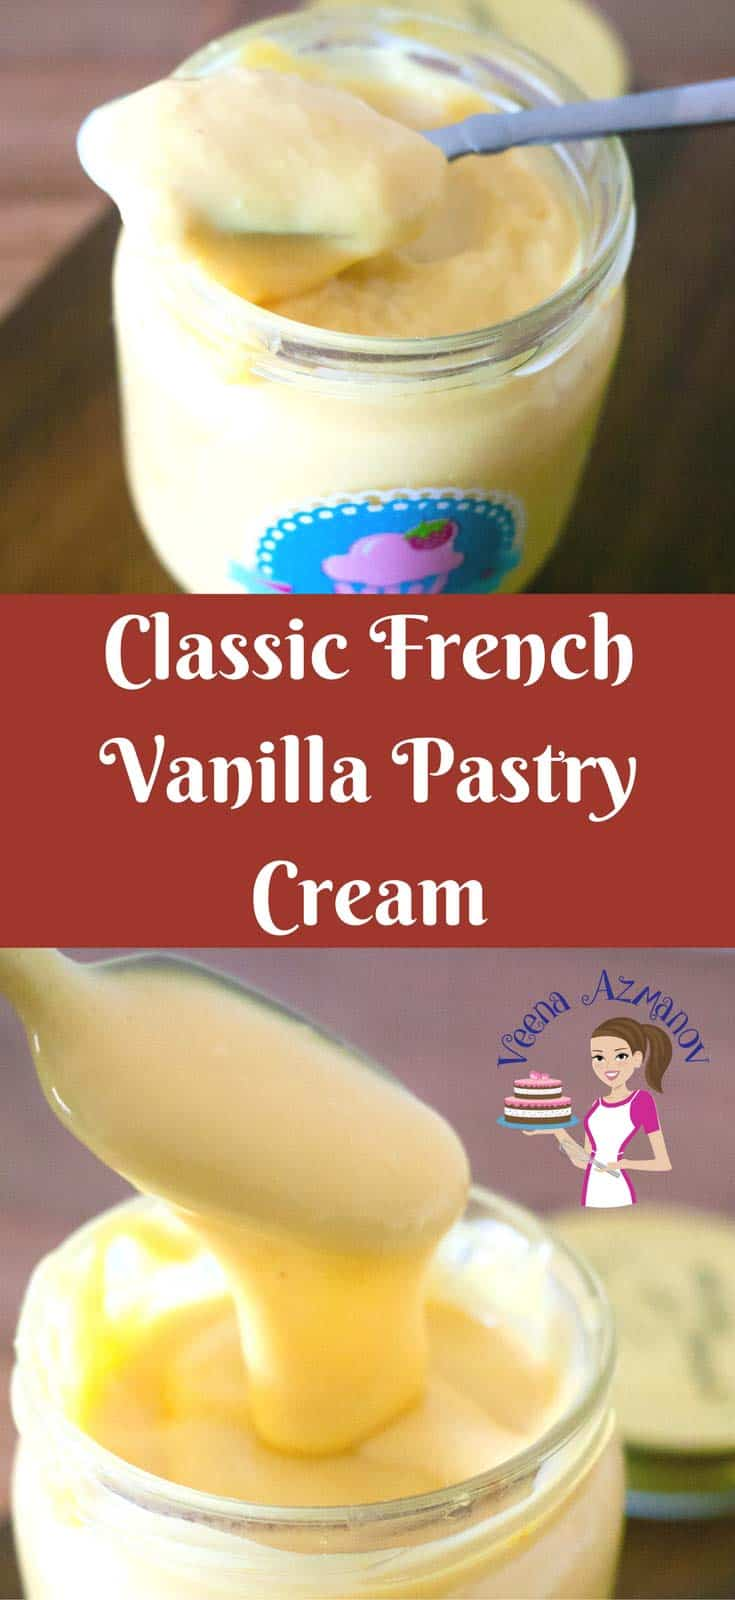 Classic French Vanilla Pastry Cream is a perfect base for many desserts such as fruit tarts, mousses, Bavarian Creams Ice-cream etc. Made by tempering Egg yolks to achieve a velvety, smooth, creamy and silky cream that almost melts in your mouth.